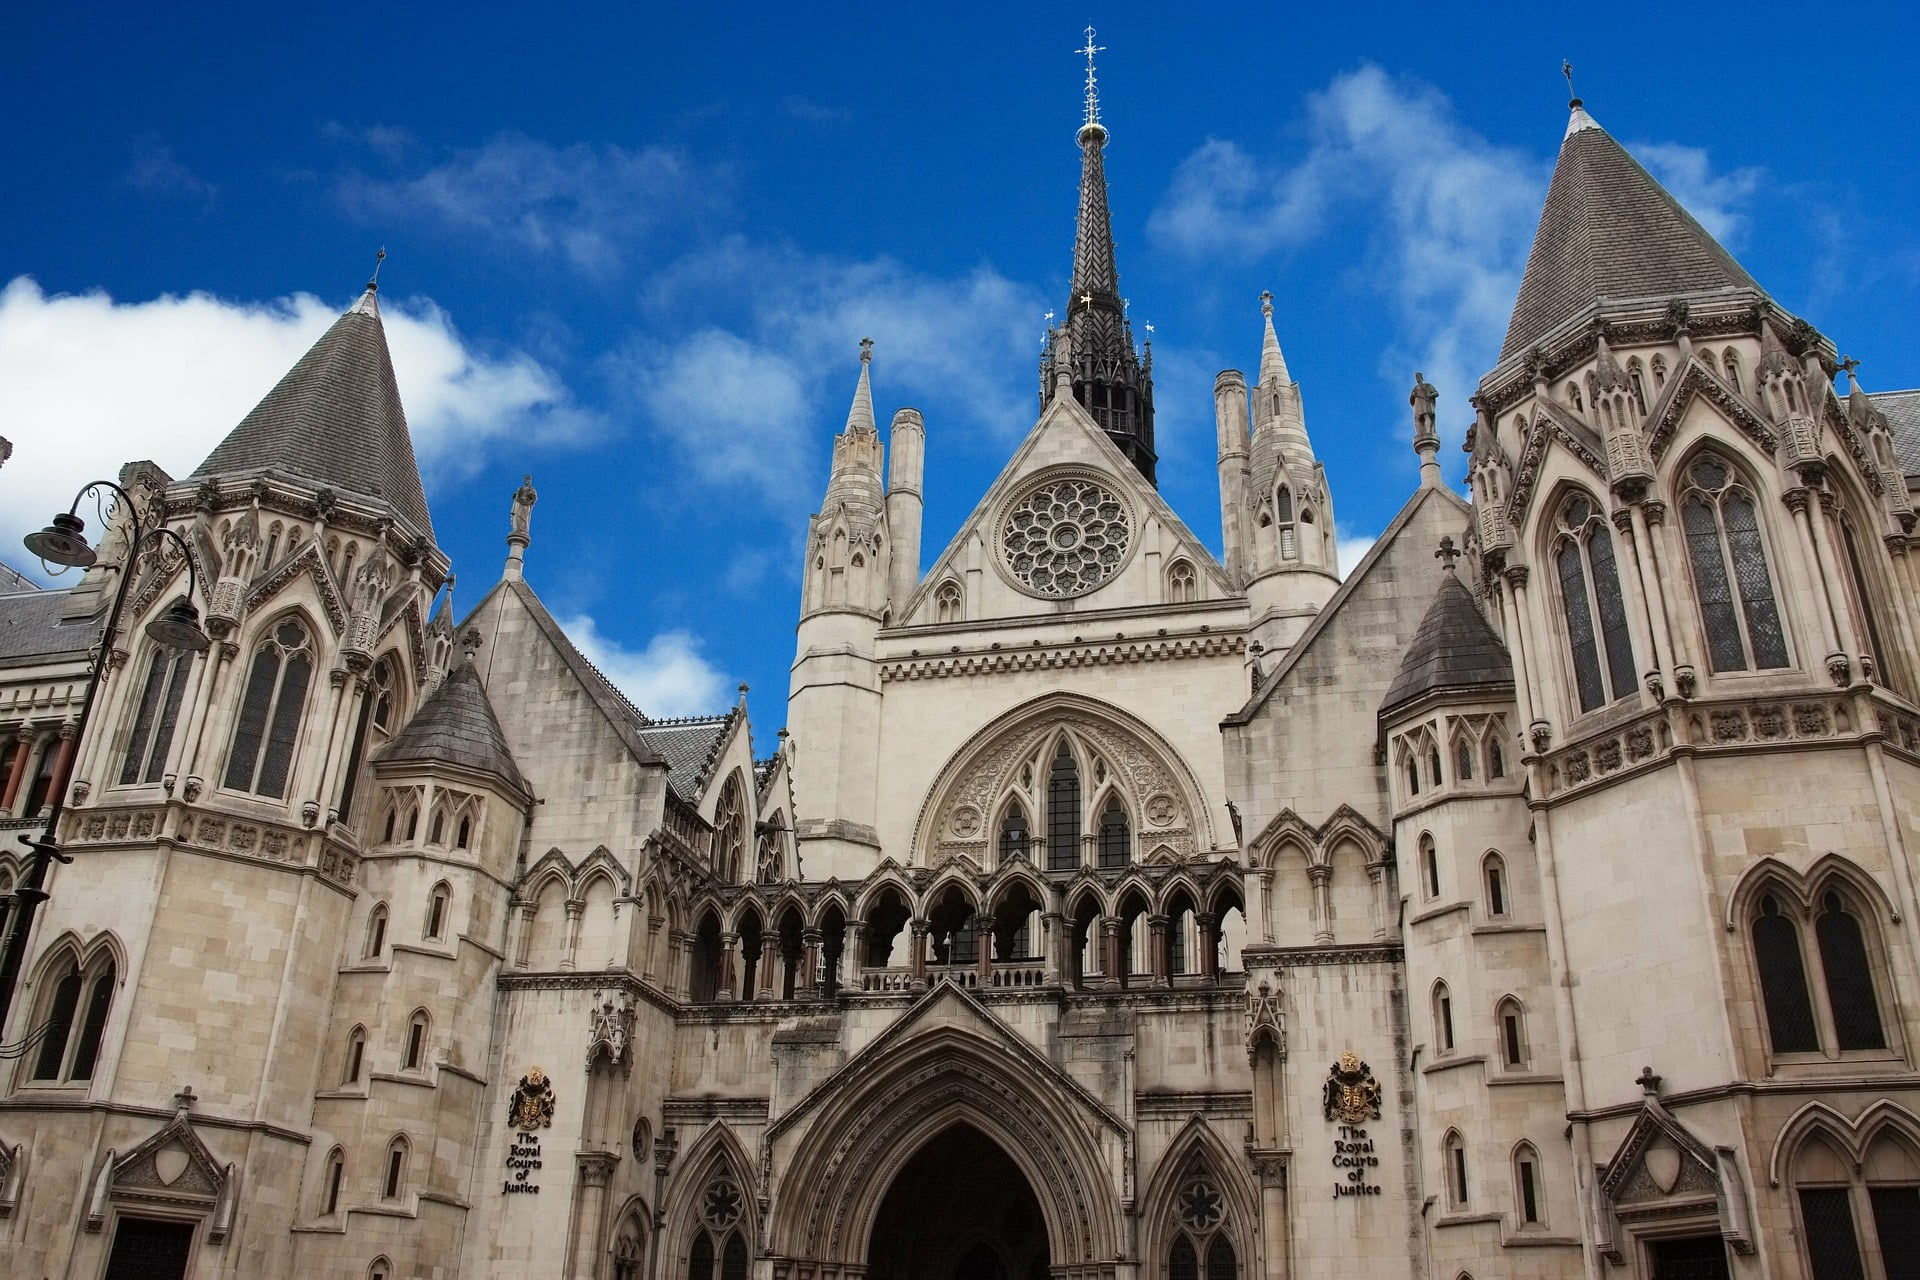 rcj royal court justice lawyer london litigate cpr civil commercial financial litigation